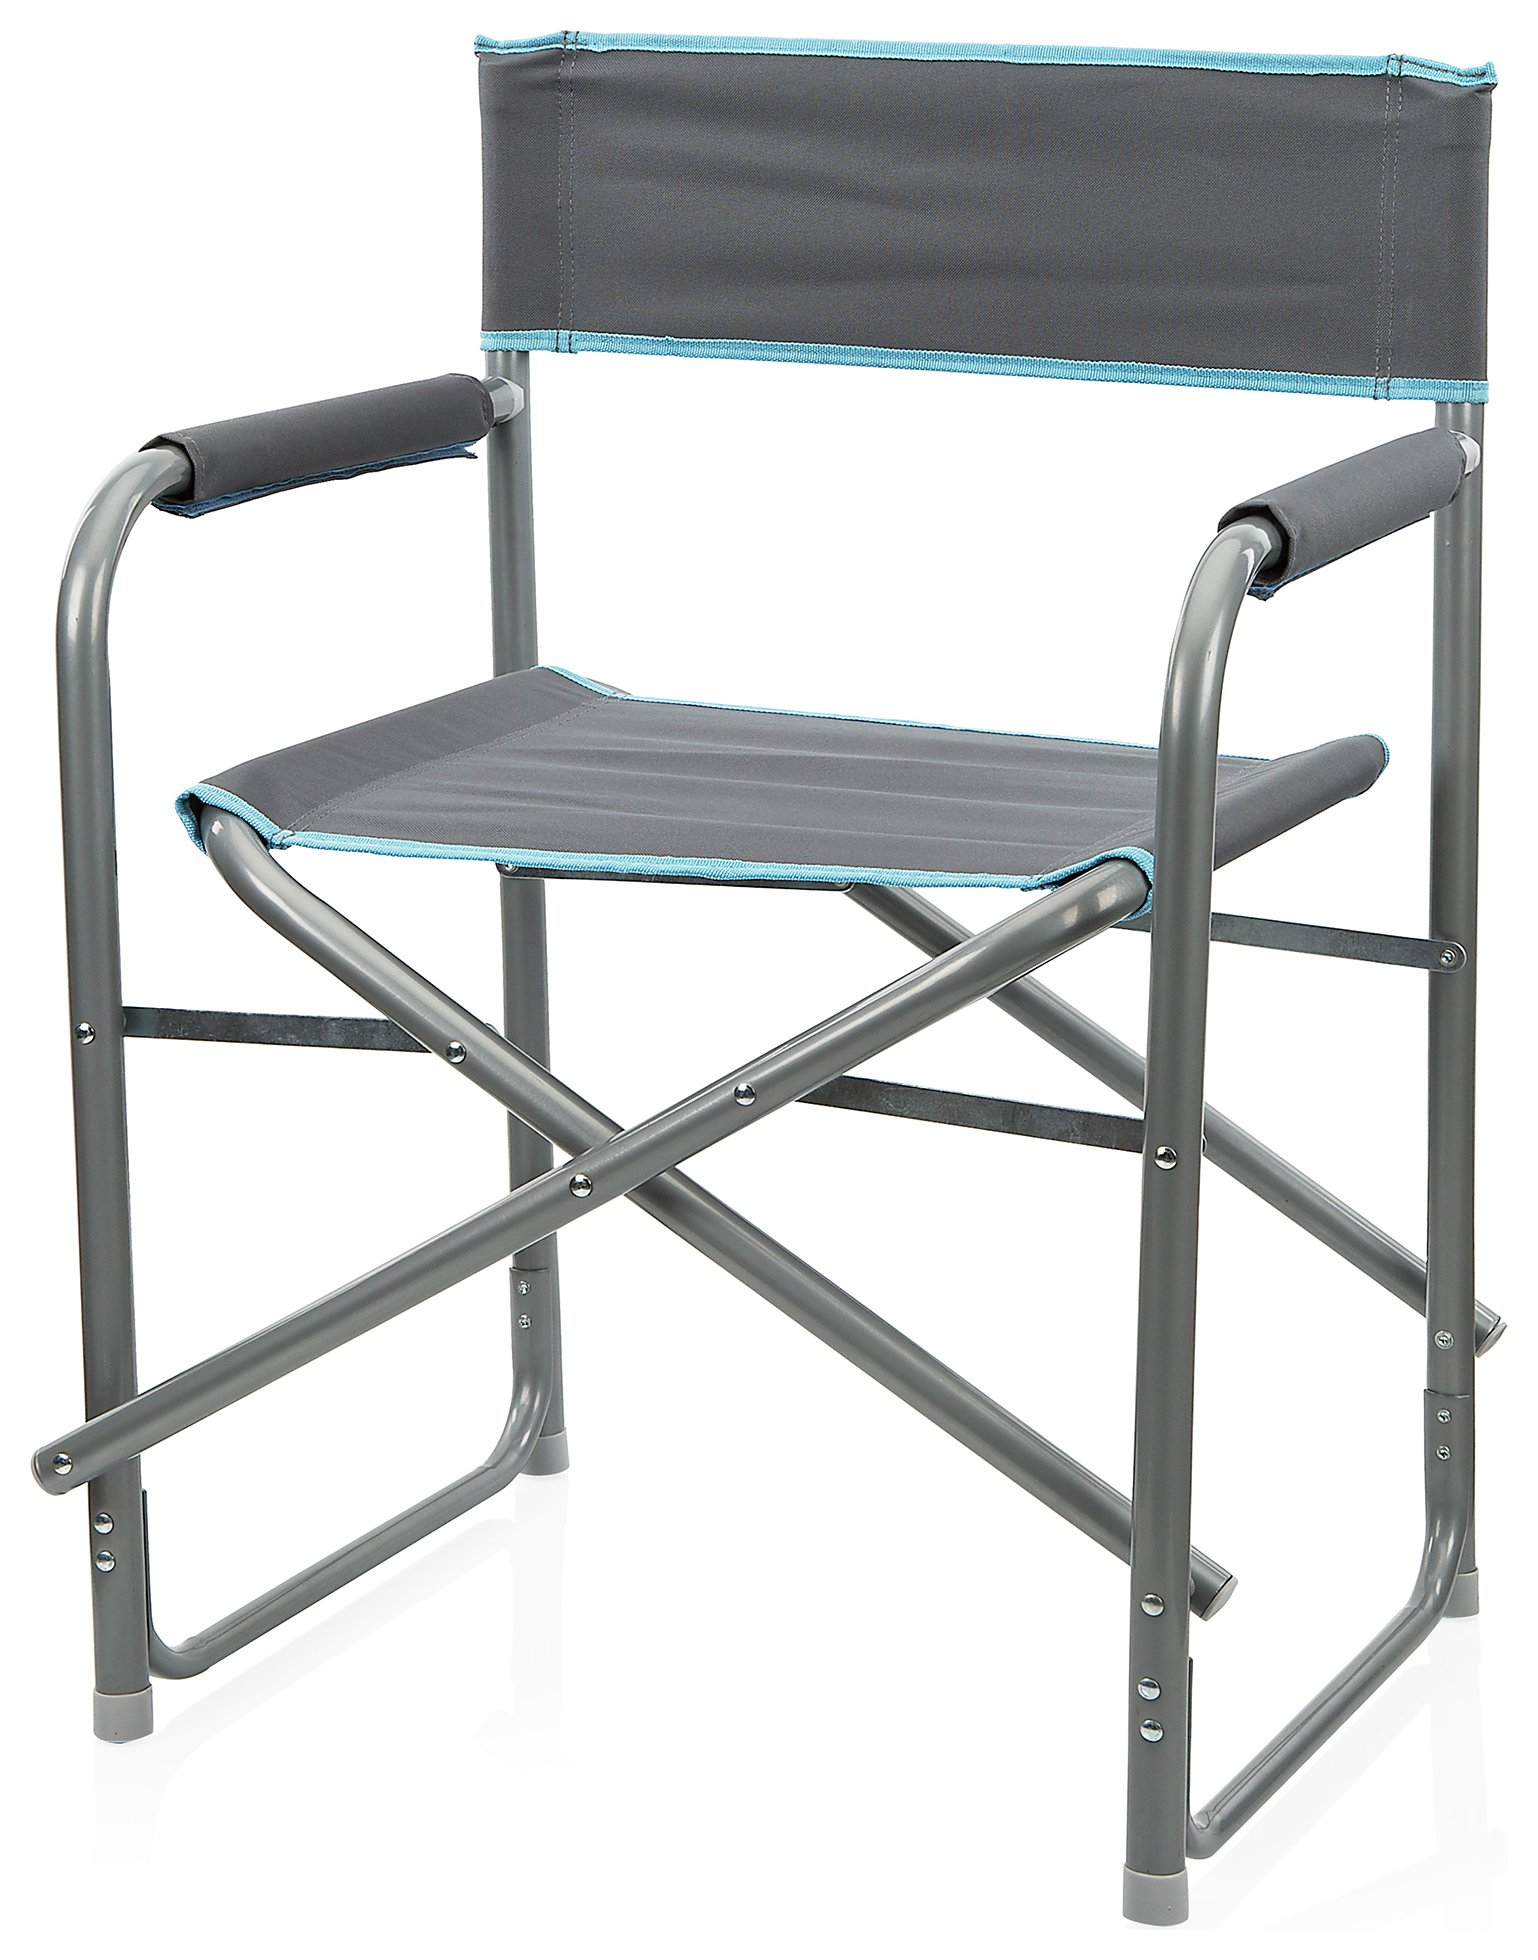 high quality directors chairs target outdoor chair campart travel foladable florence gay